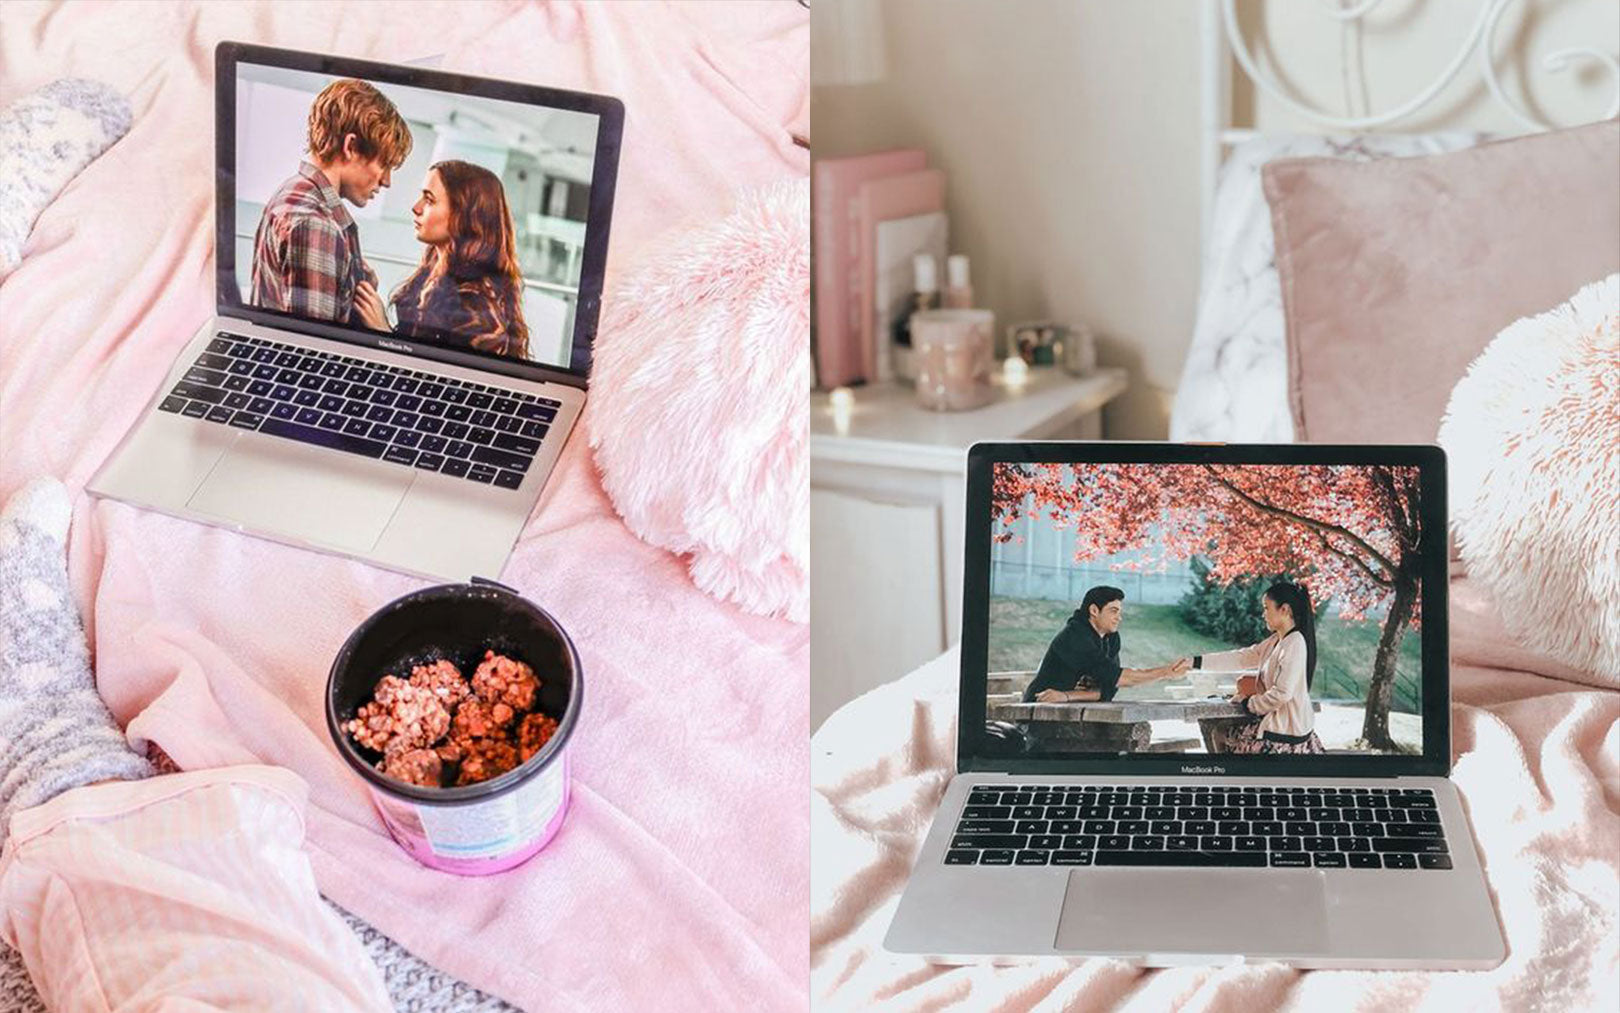 netflix and chill for self-care activity